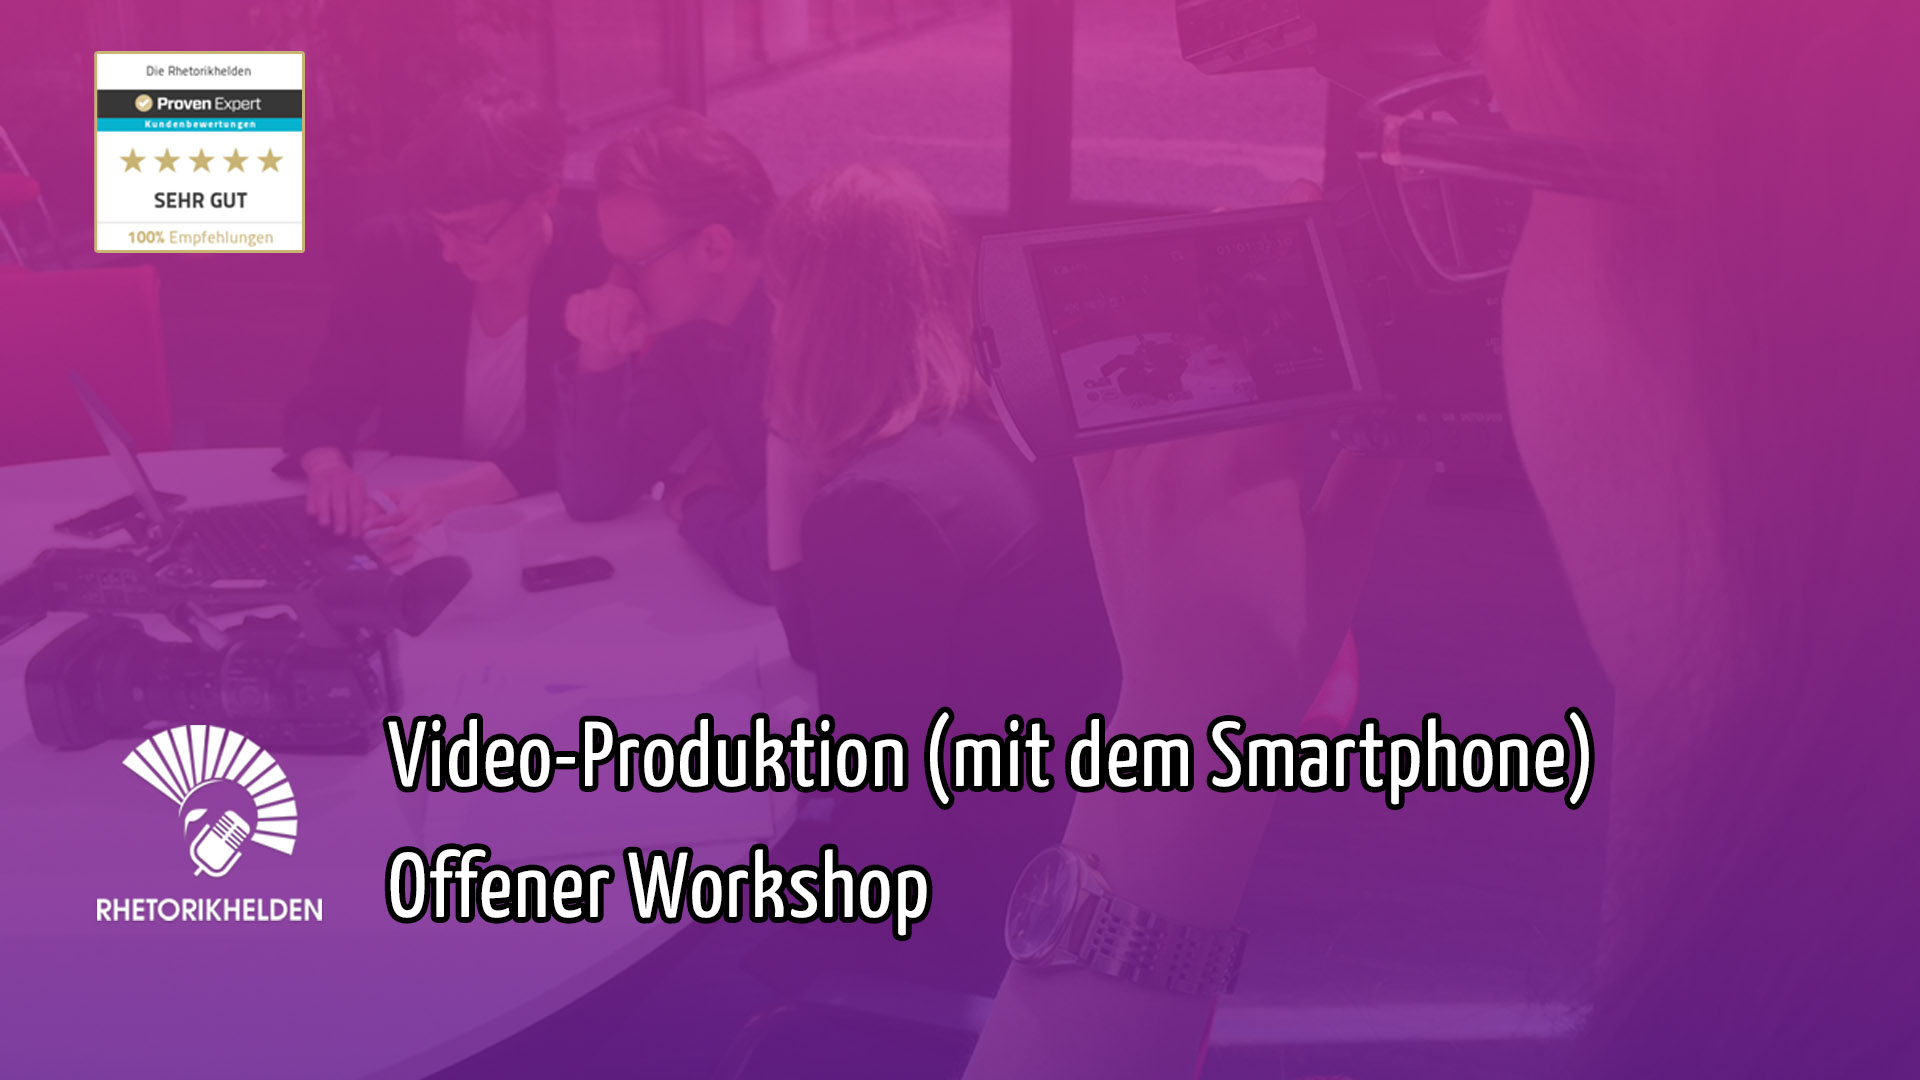 offener-workshop-video-produktion-smartphone